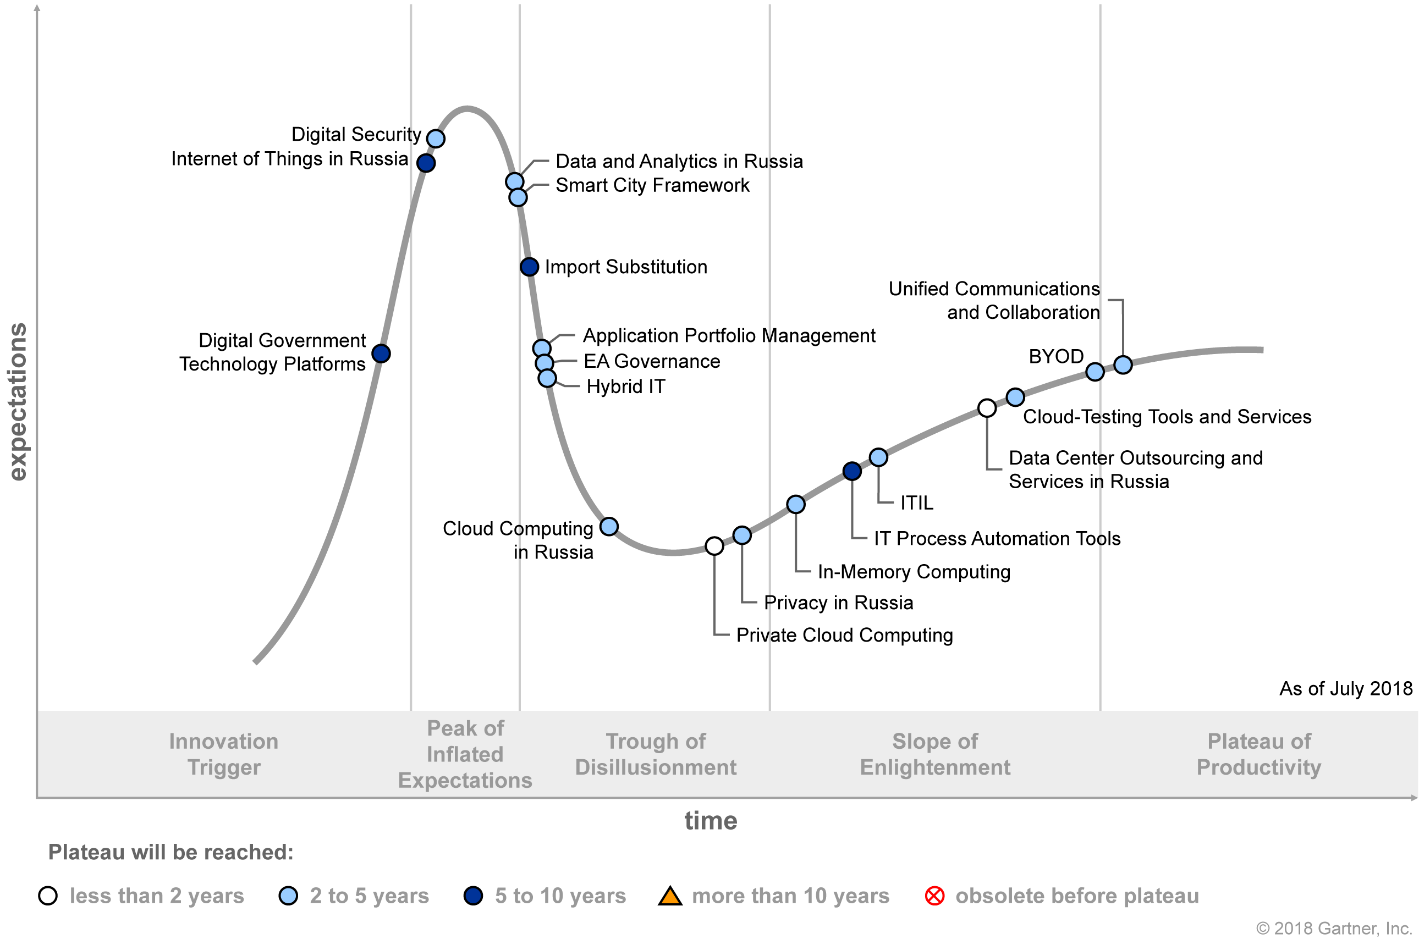 Gartner Hype Cycle for ICT in Russia 2018 (G00340593)